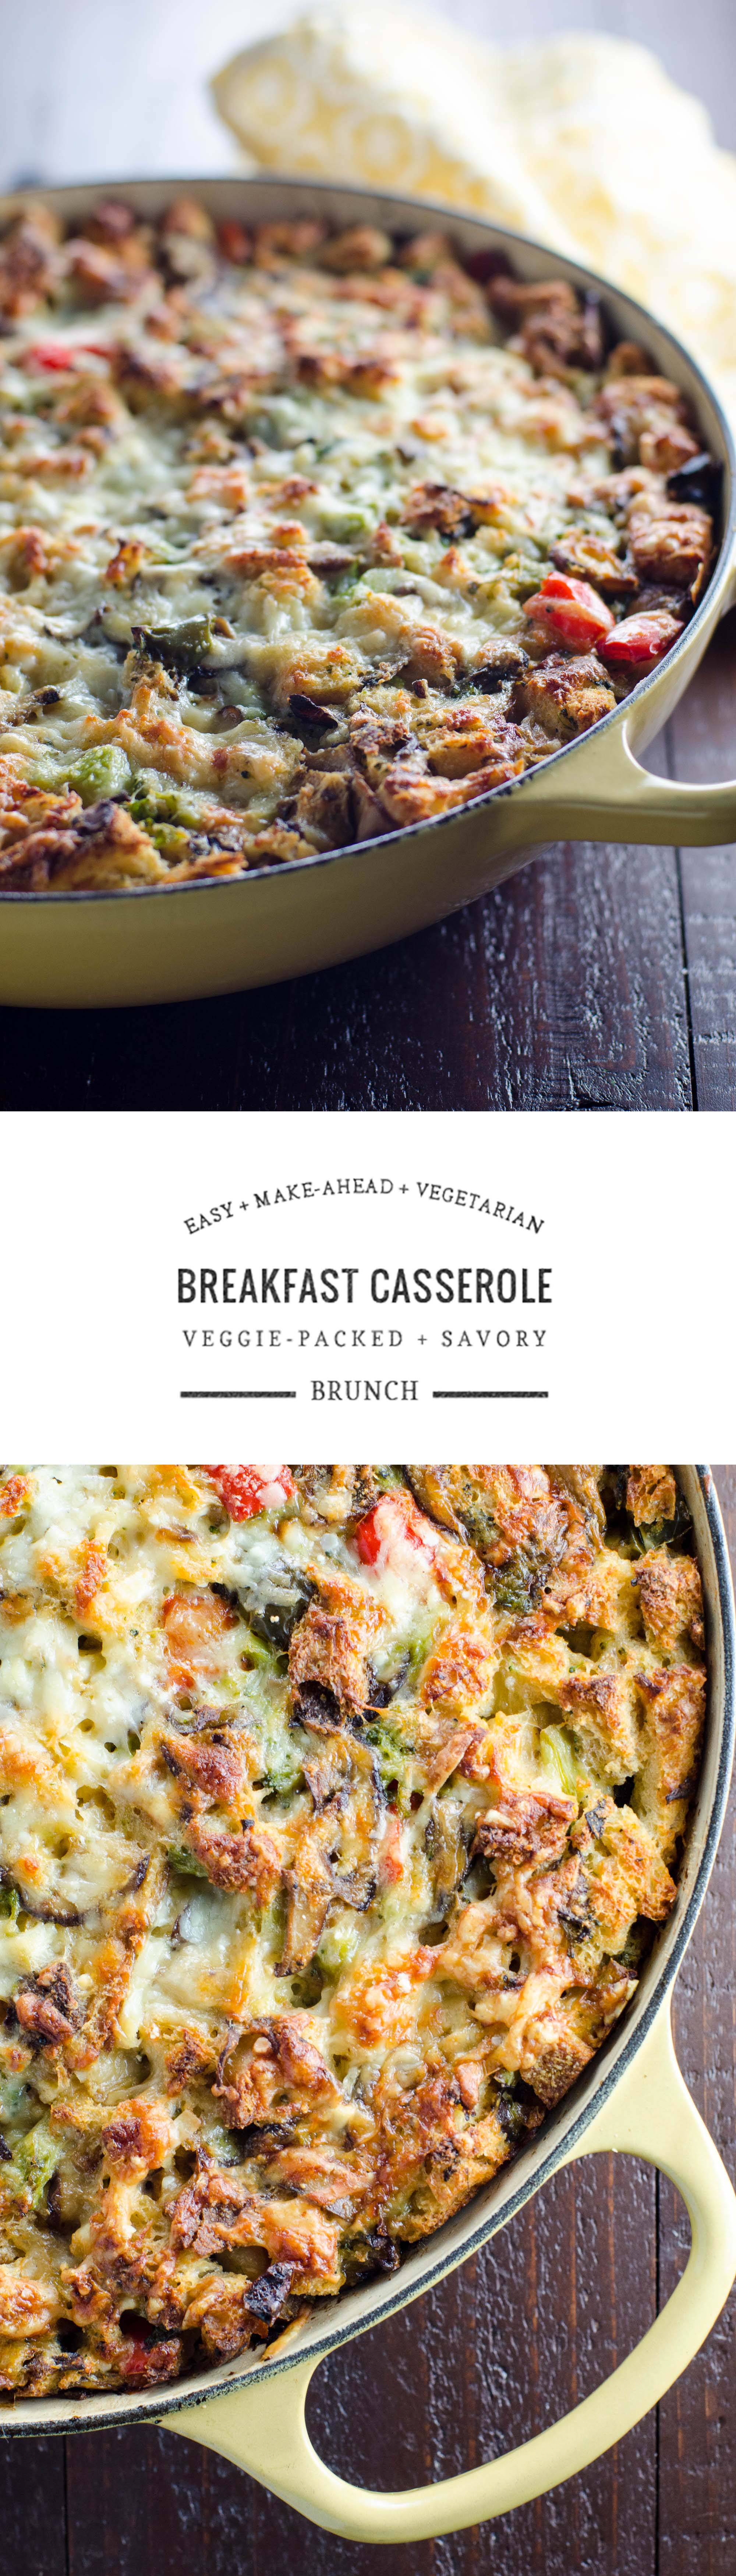 This savory make-ahead vegetarian breakfast casserole is perfect for Christmas morning or your next brunch.